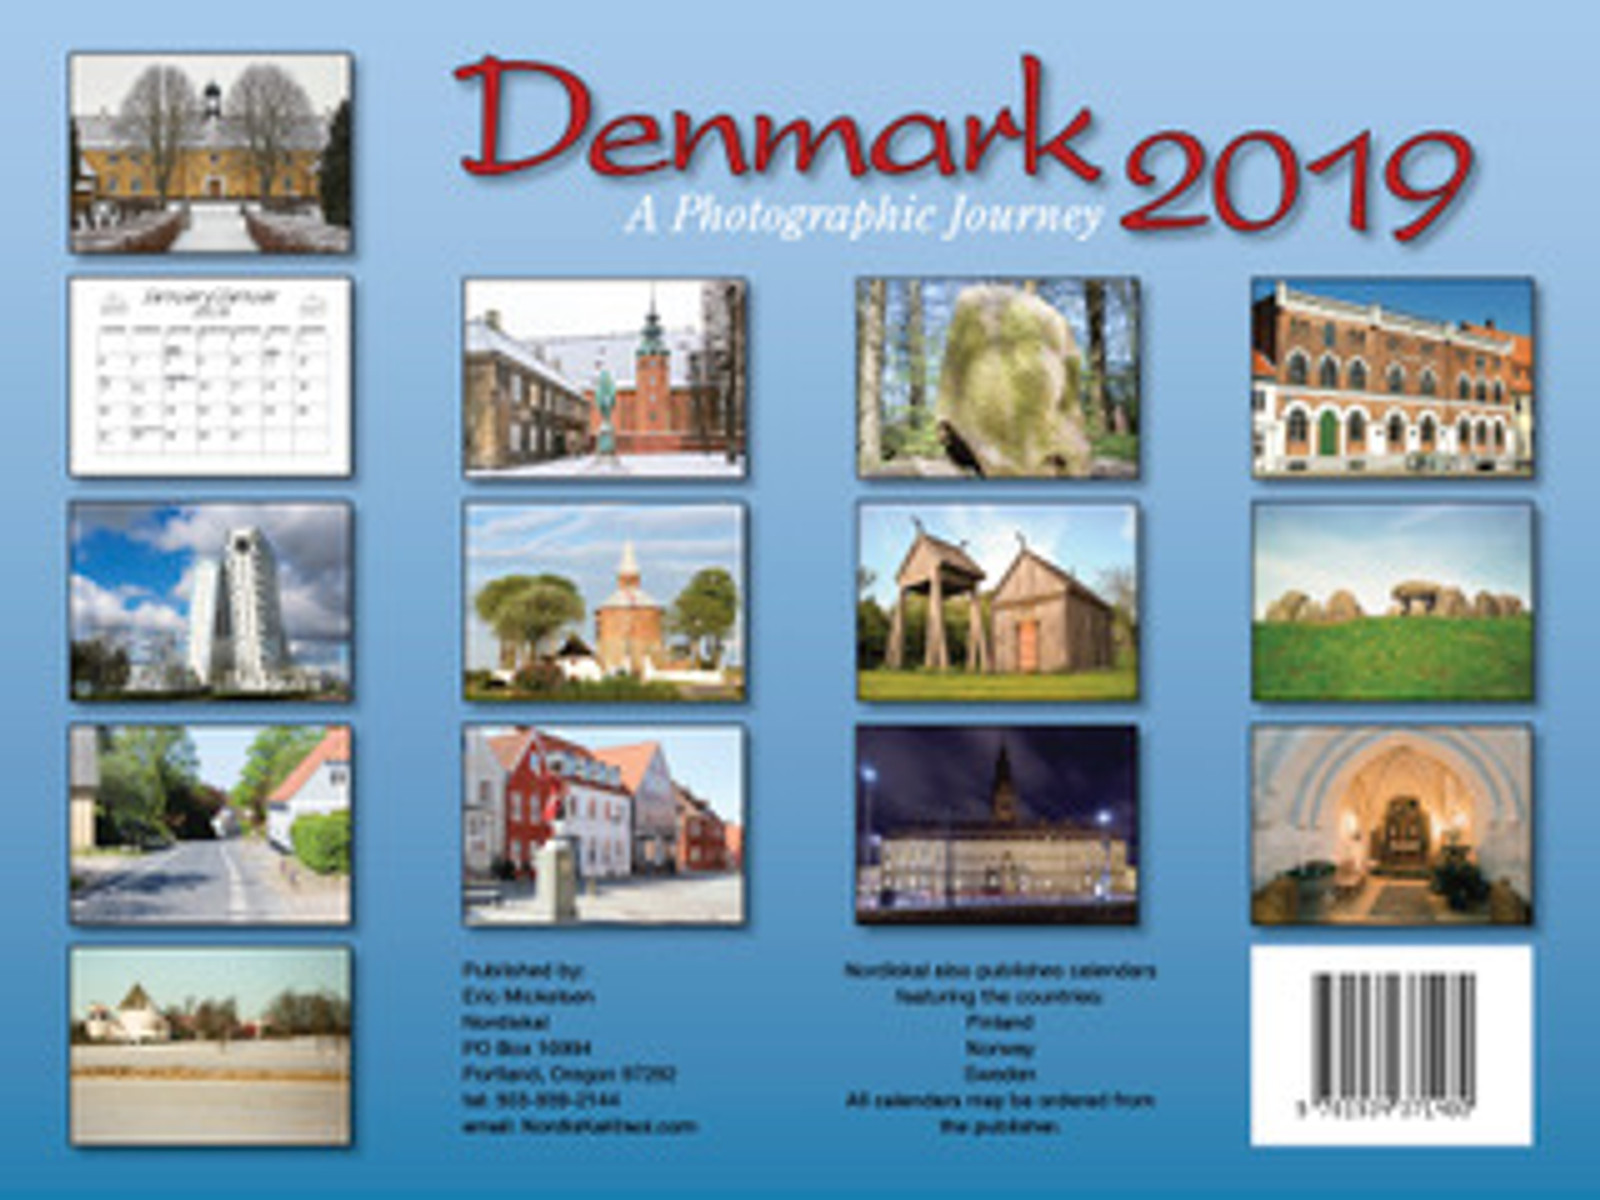 2019 Denmark Calendar in Photographs - Nordiskal Back Cover